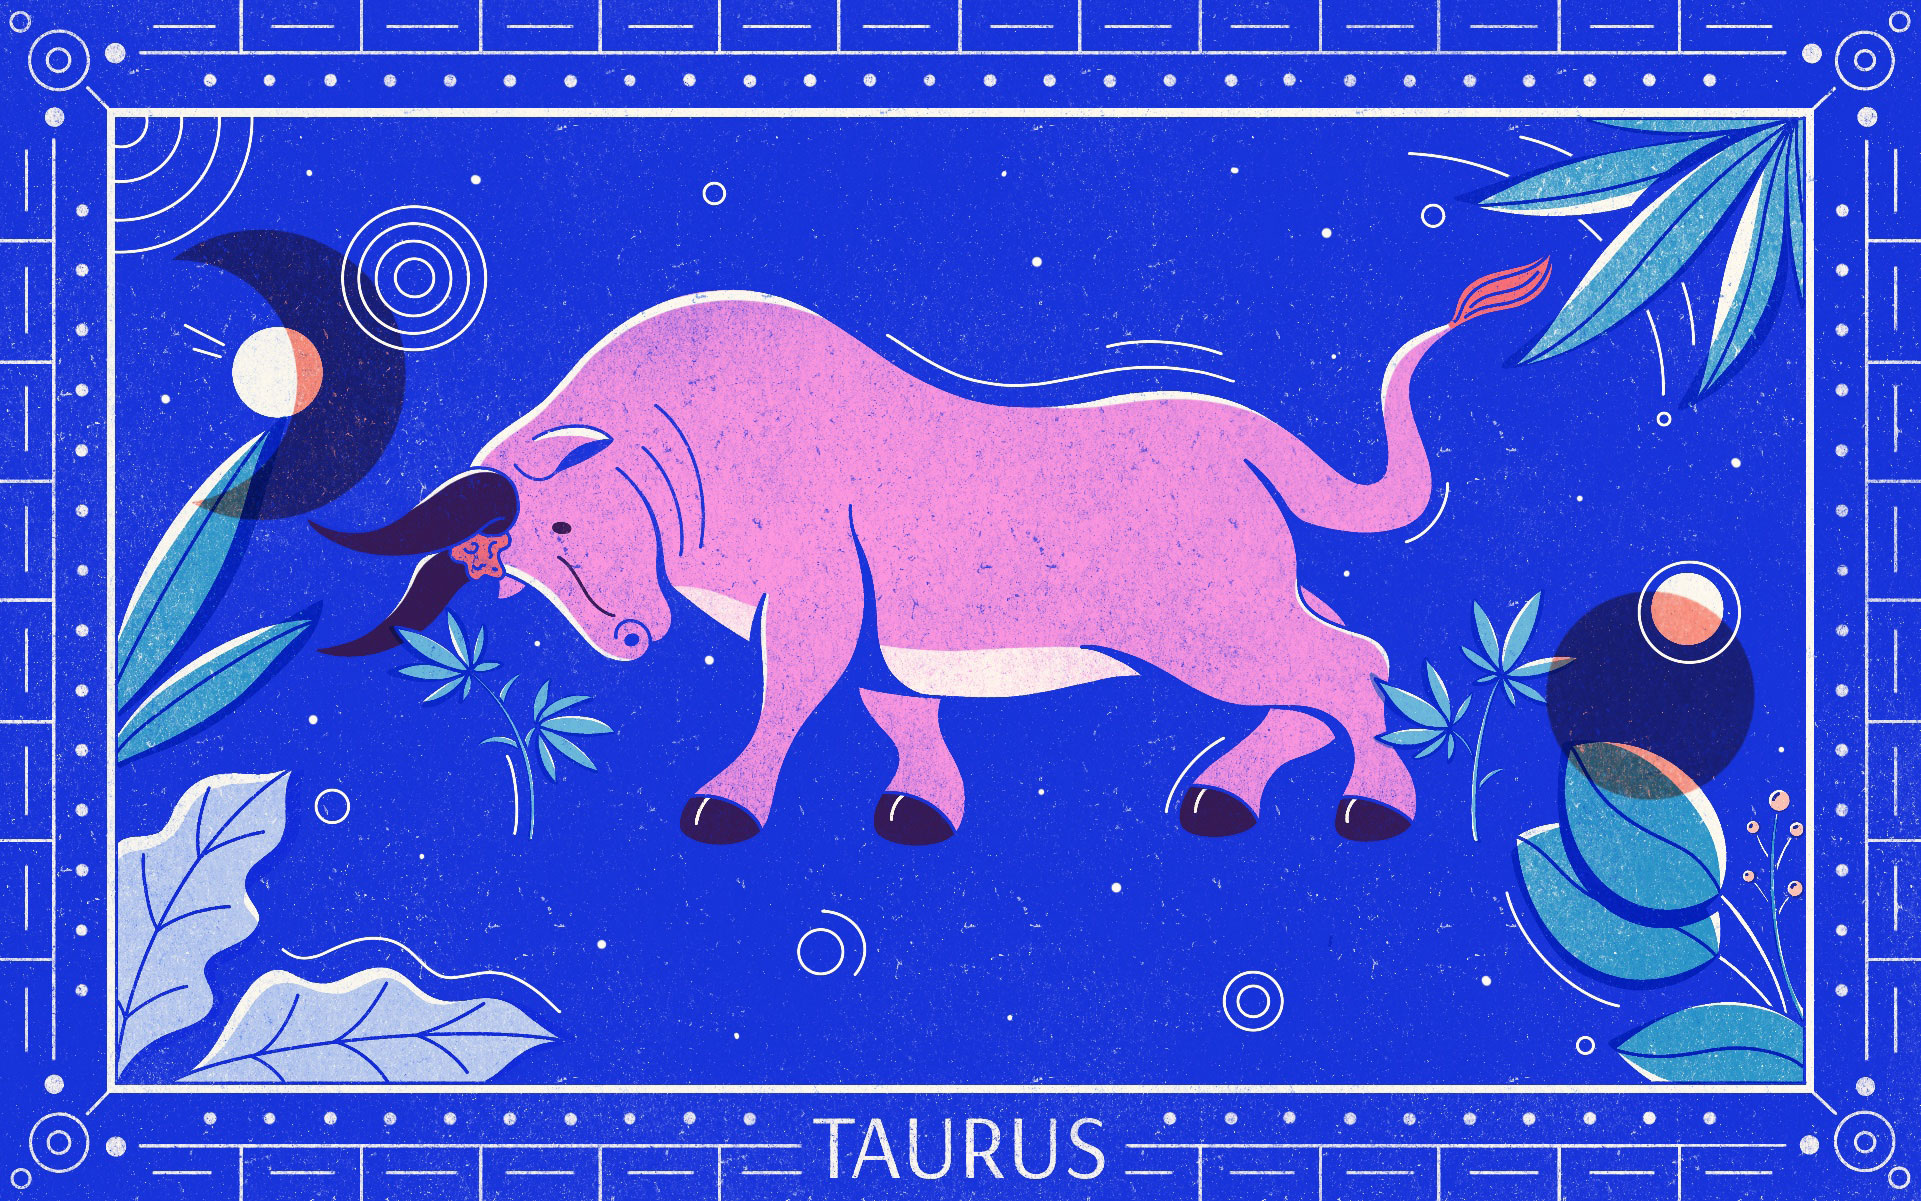 TAURUS web Gillian Levine - Star signs and cannabis strains: July 2020 horoscopes